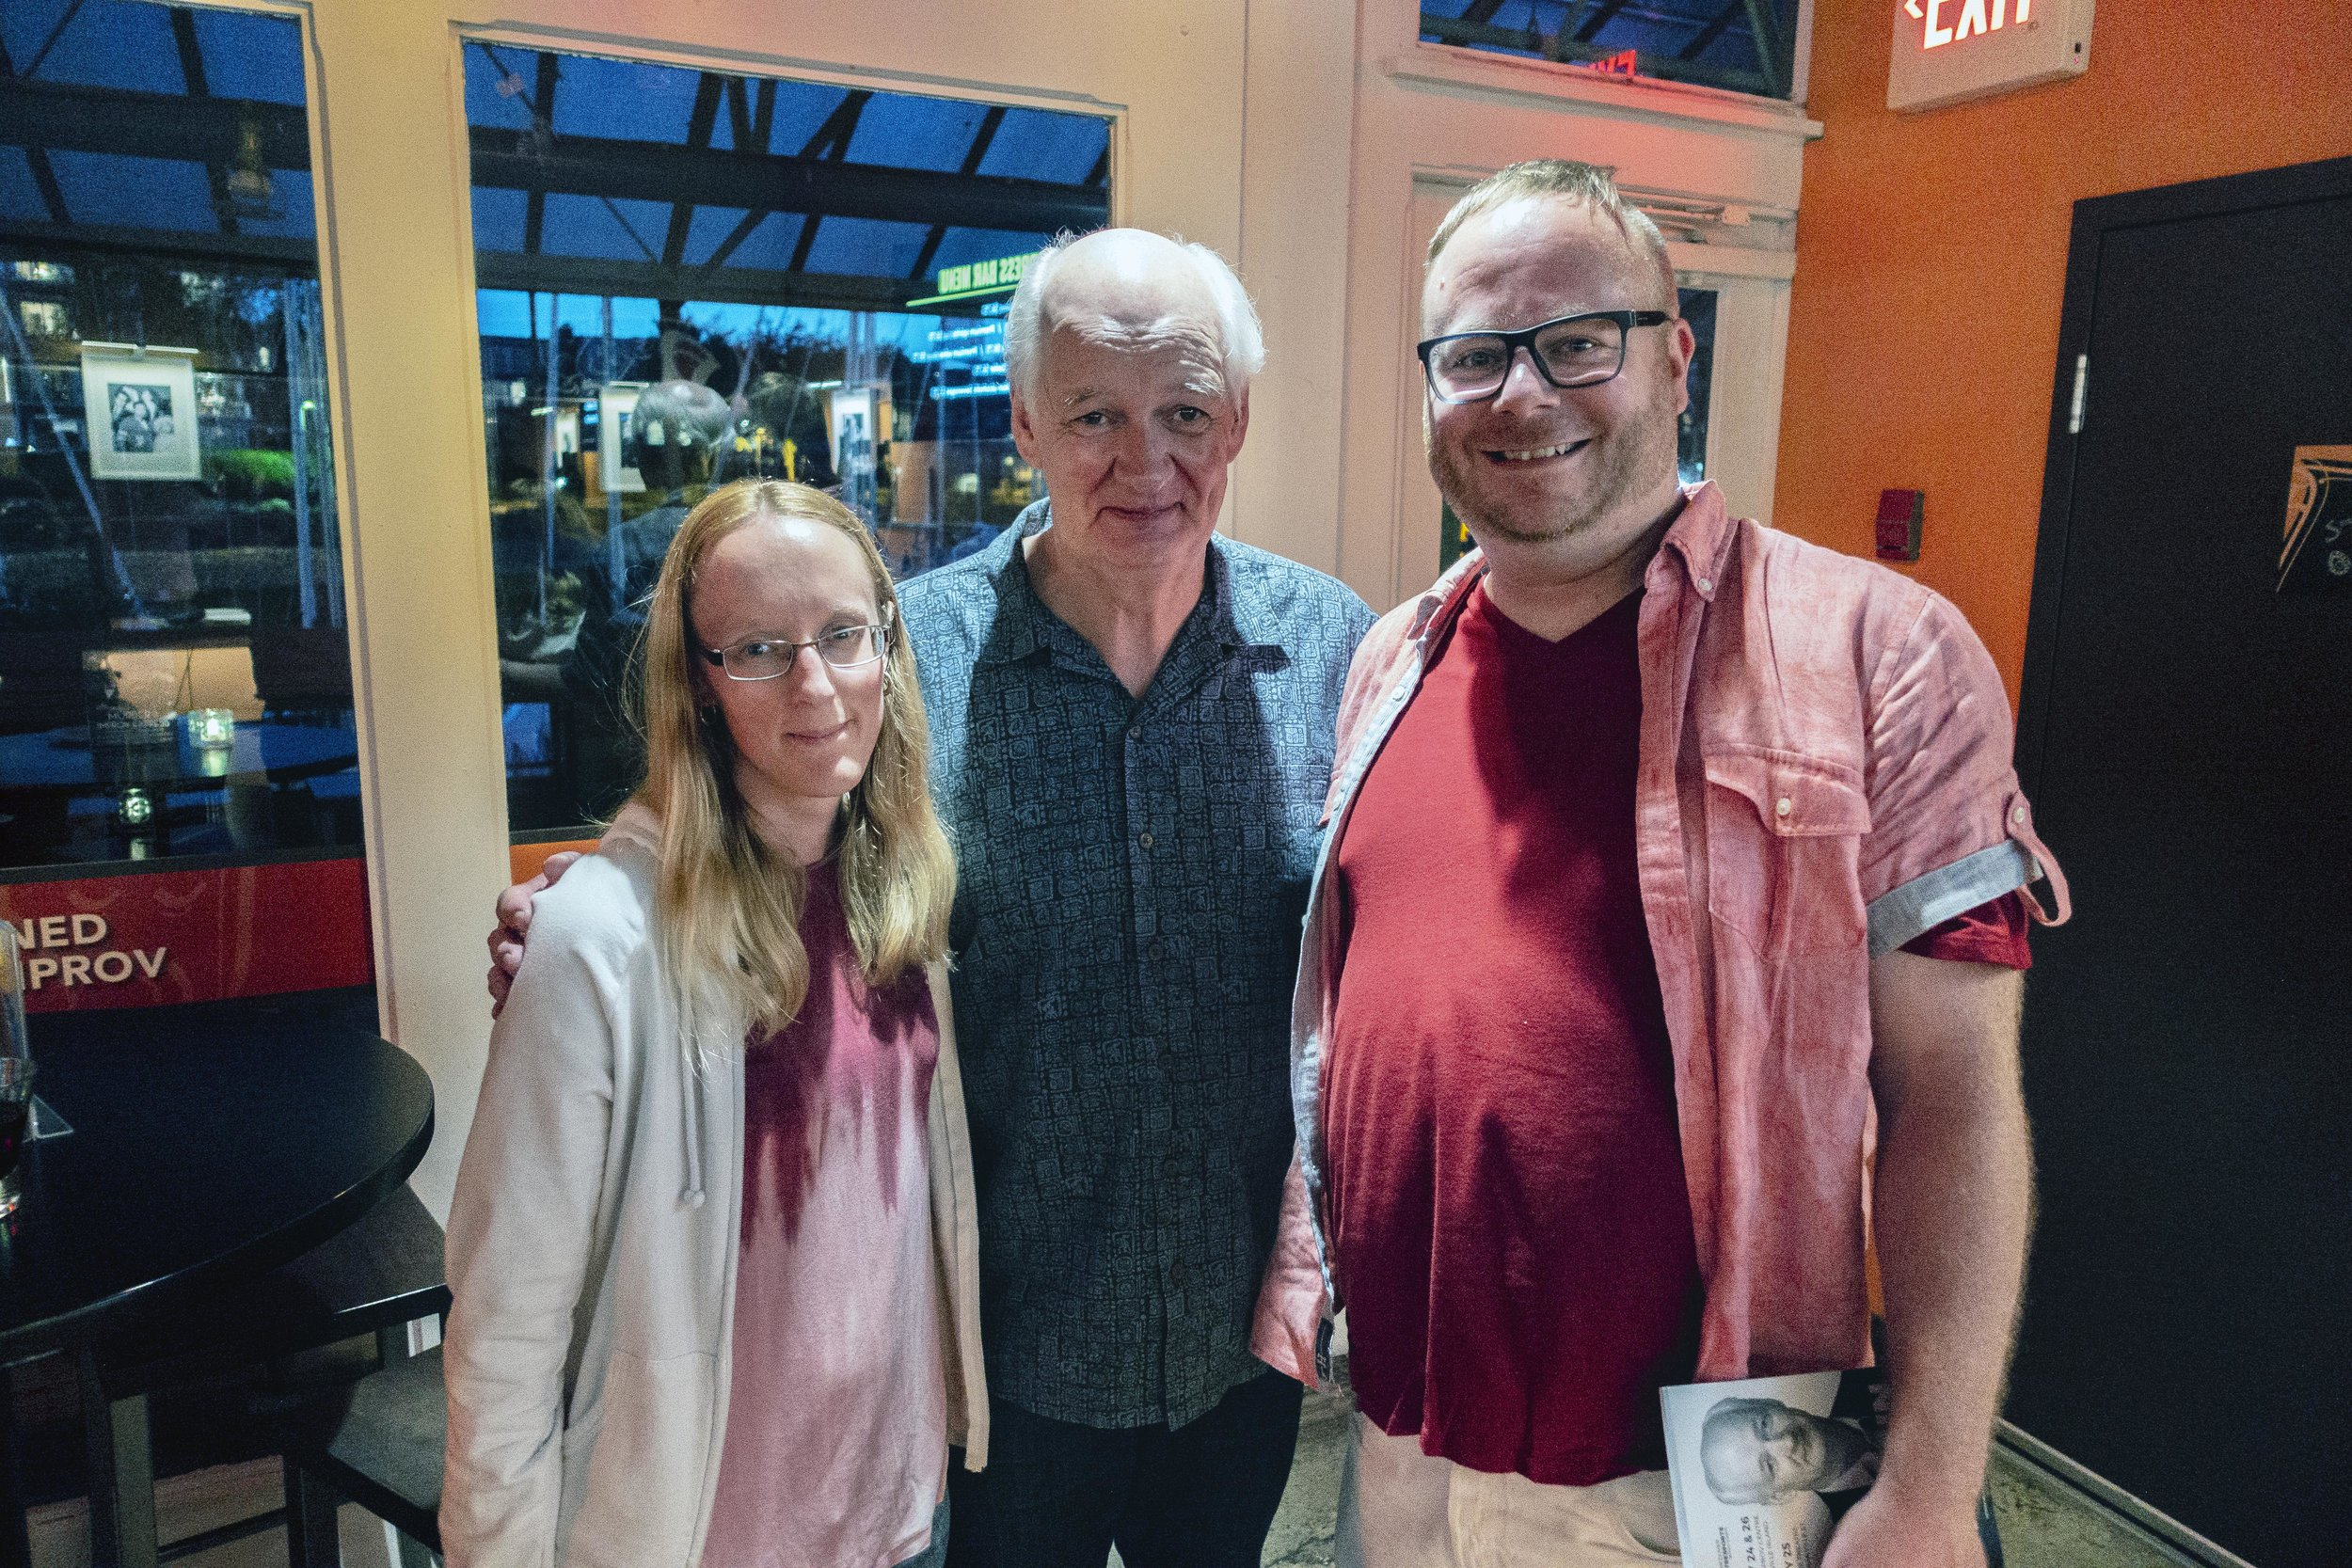 Meeting a local hero - Colin Mocheri on May 24, 2018.    Left to right: Shannon Cawley, Colin Mocheri and Steven Lee.